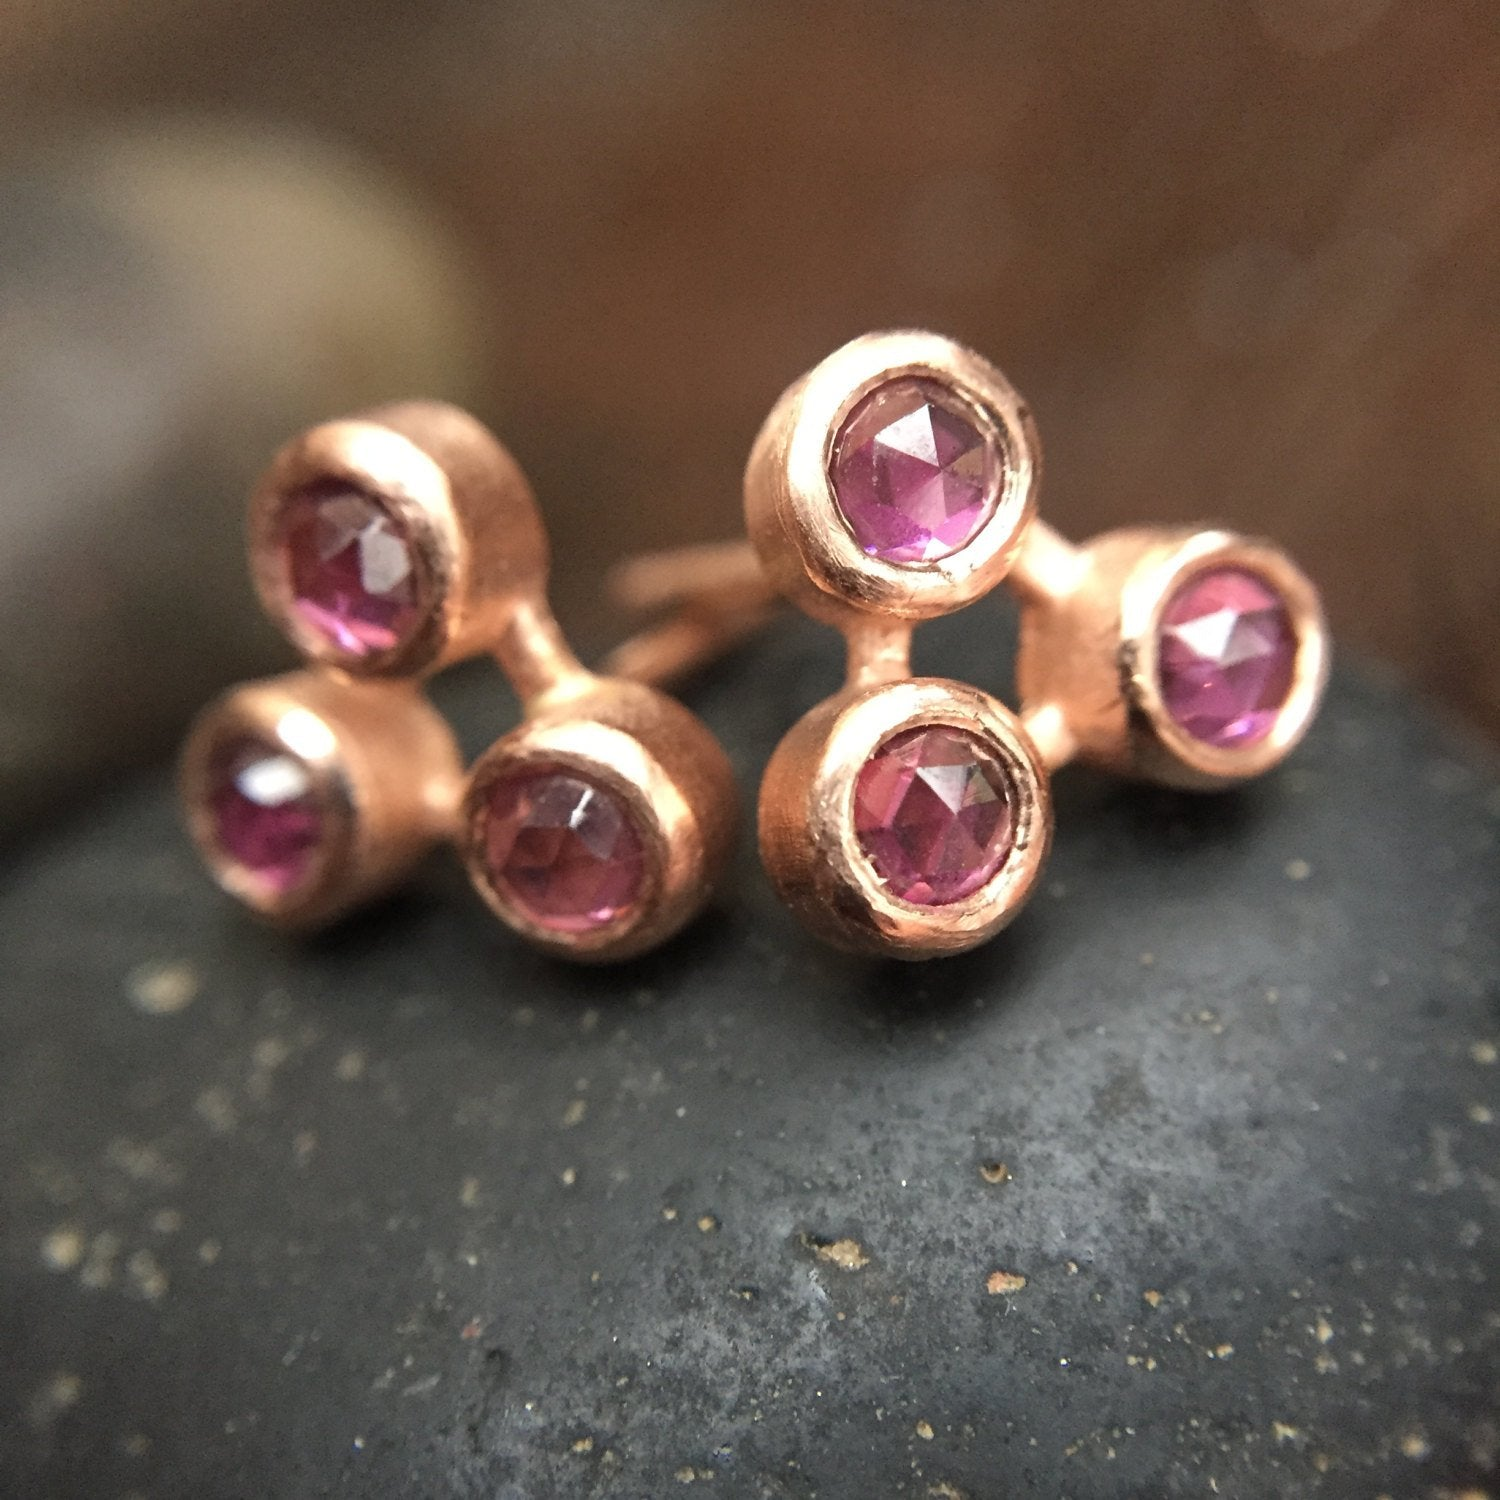 Trinity Rose Cut Garnet Stud Earrings in 14K Rose Gold Boho Stud Earrings Fine Jewelry Rose Cut Earrings Pink Gold Bezel Stud Earrings